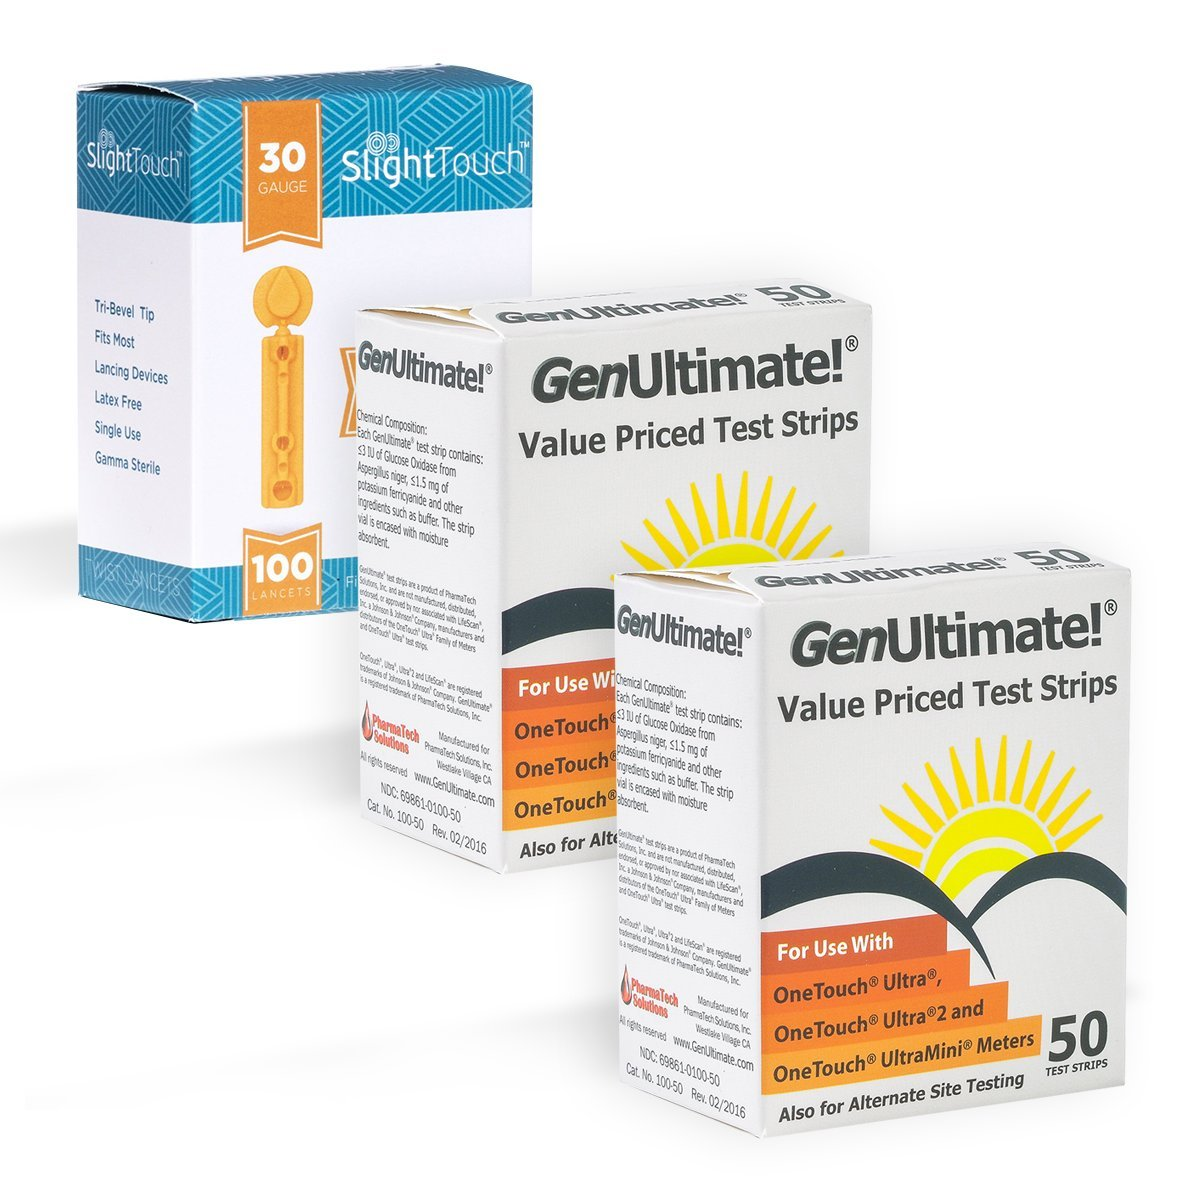 GenUltimate Blood Glucose Test Strips For Use with One Touch Ultra Meters - 2 Pack With 100 Slight Touch Lancets by Slight Touch